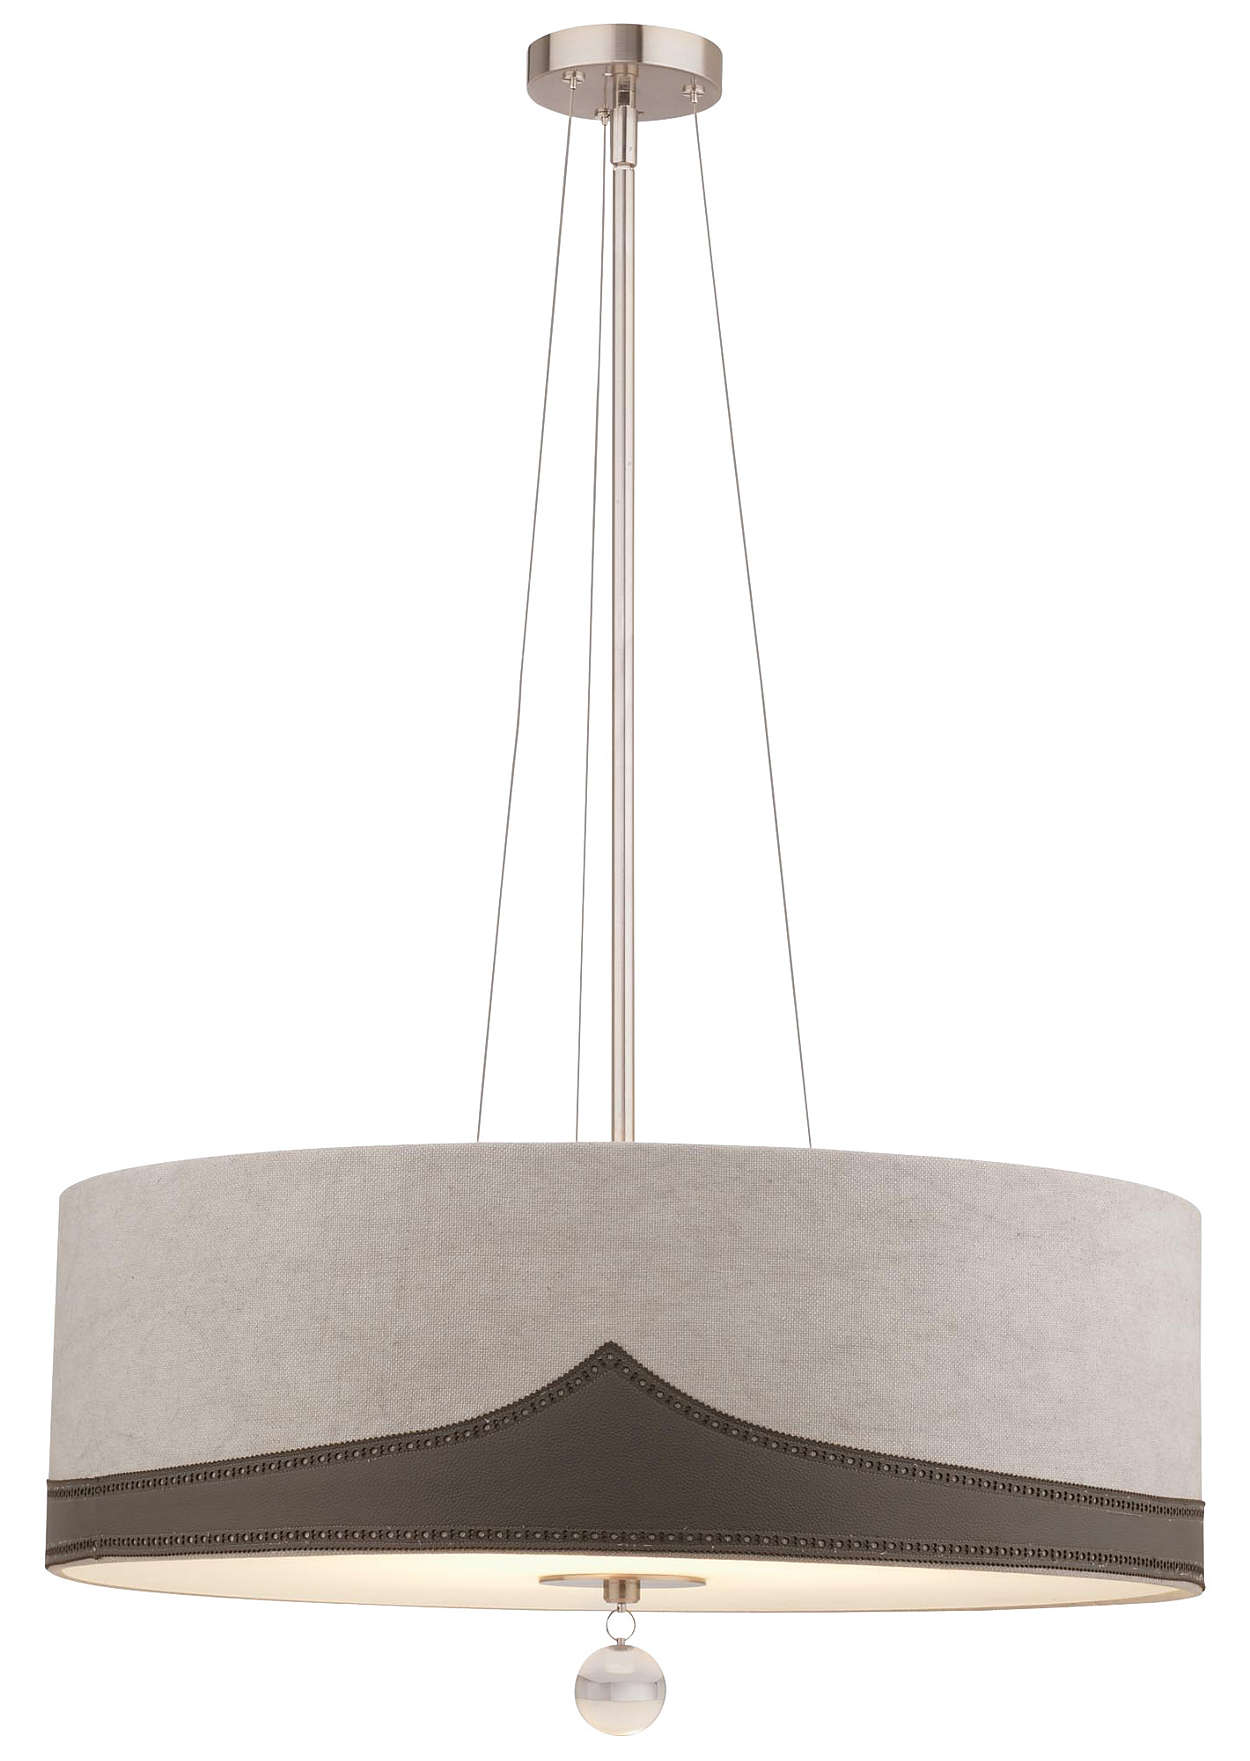 Wing Tip 3-light Pendant in Satin Nickel finish